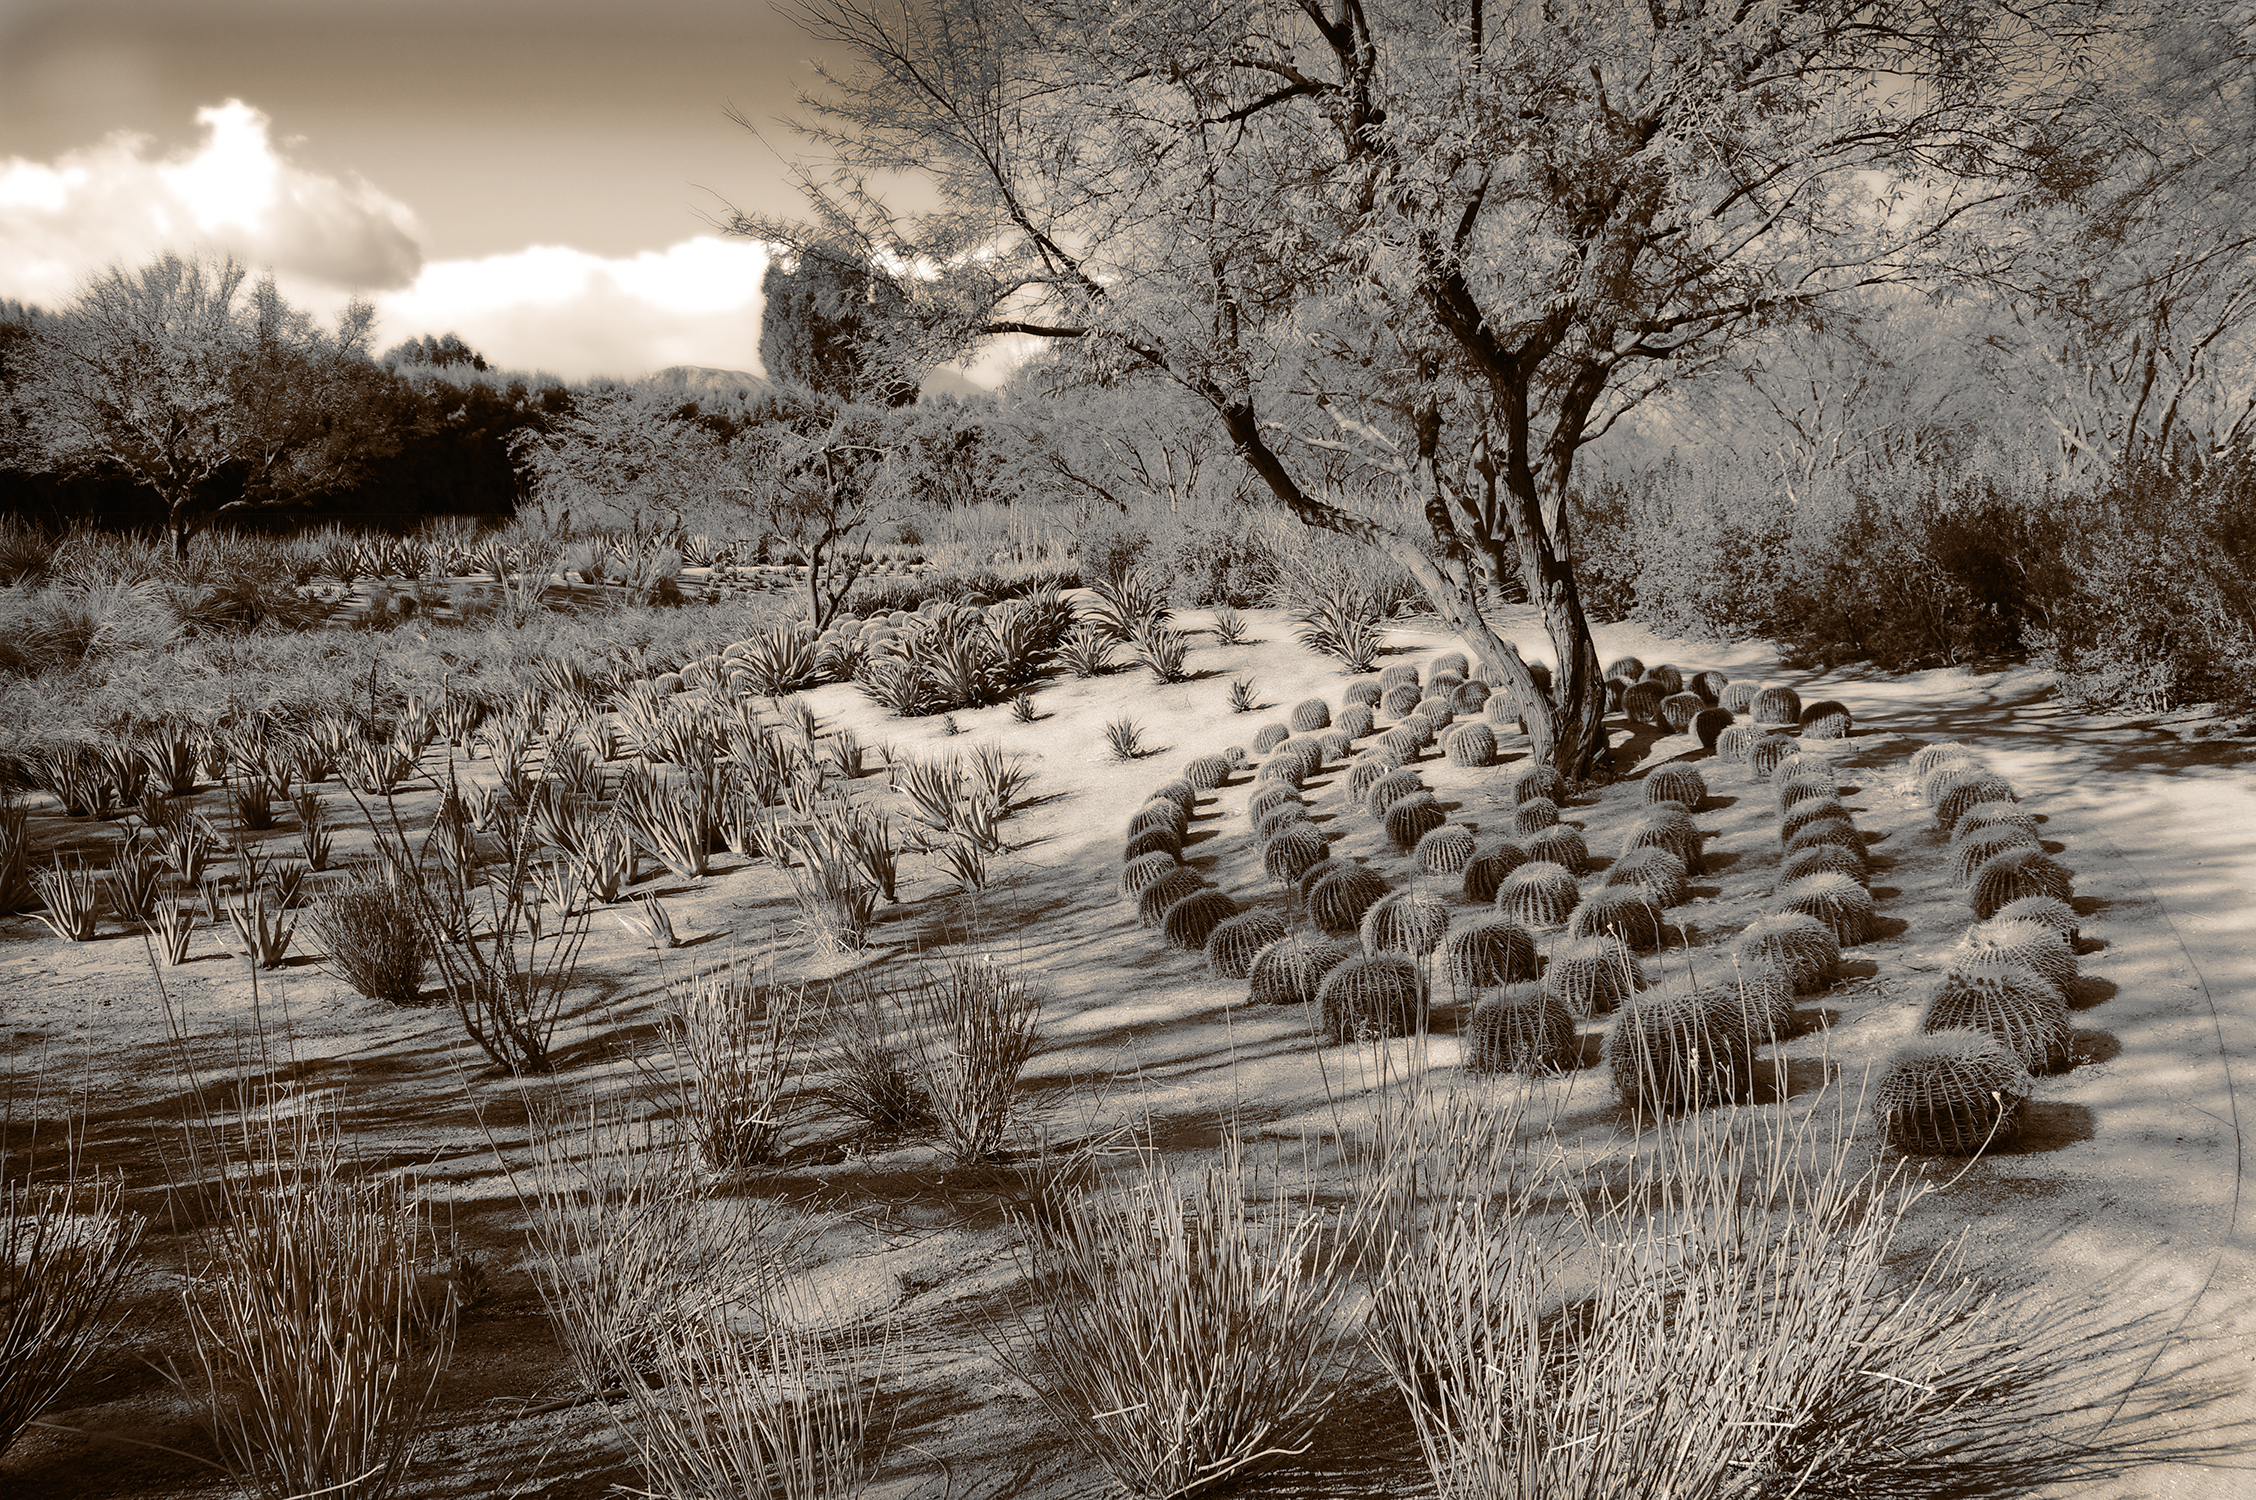 The Dance of the Barrel Cactus